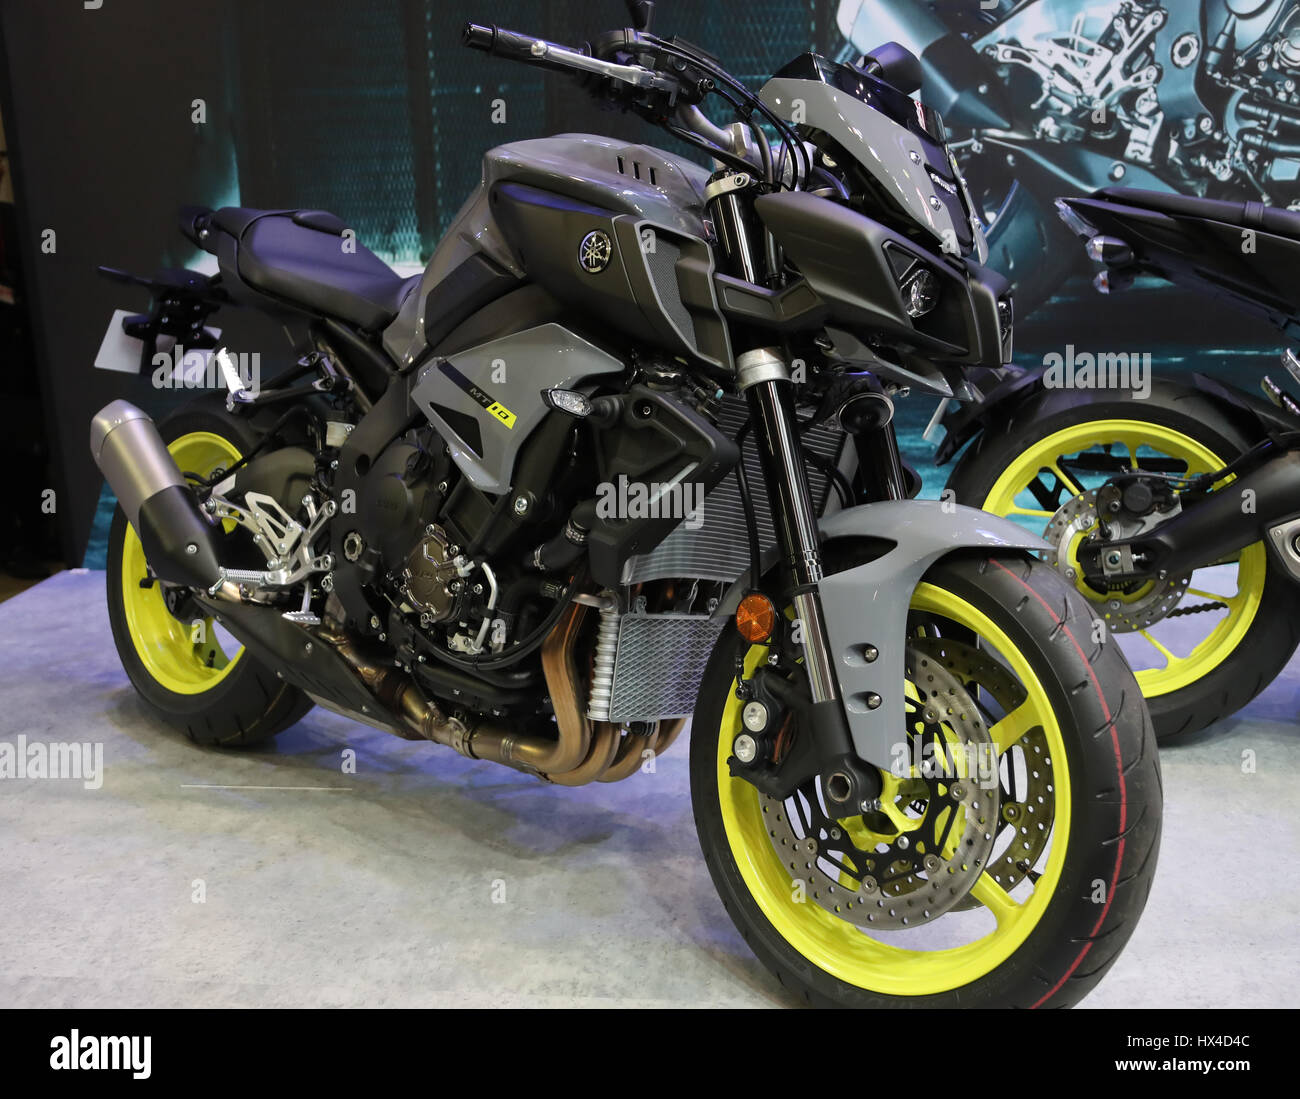 Yamaha Motor's MT-10 is displayed at the 44th Tokyo Motorcycle Show in Tokyo on Saturday, March 25, 2017. Some 130,000 motorcycle fans are expecting to ...